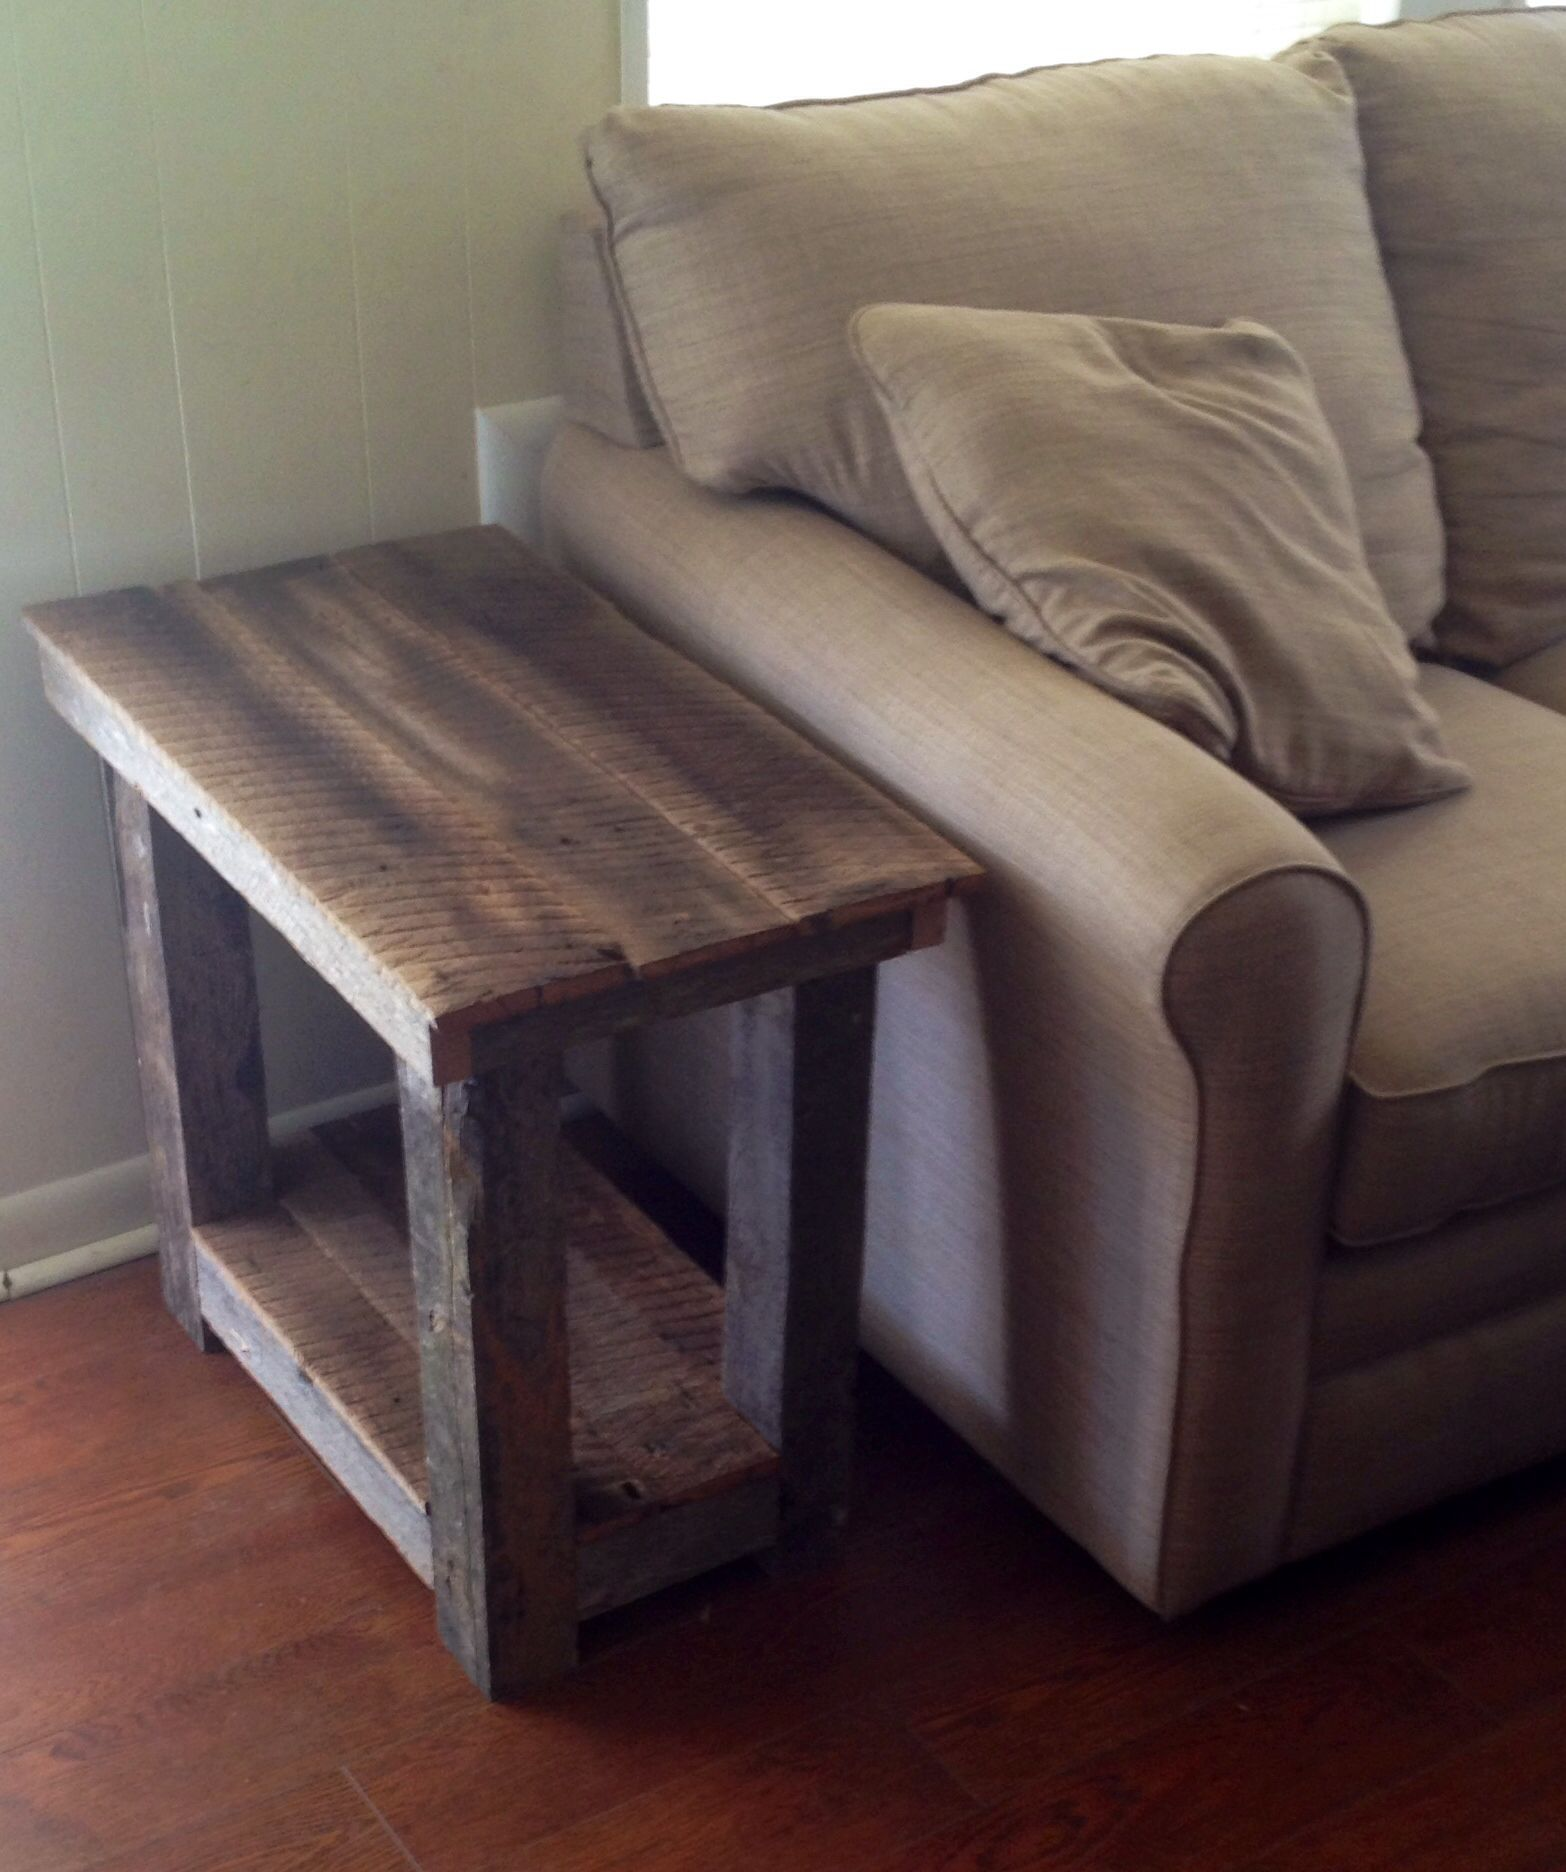 barn wood end table built from old field here what barnwood accent looks like next the couch cast iron patio furniture outdoor tables ashley winter cover office pier lamps entry